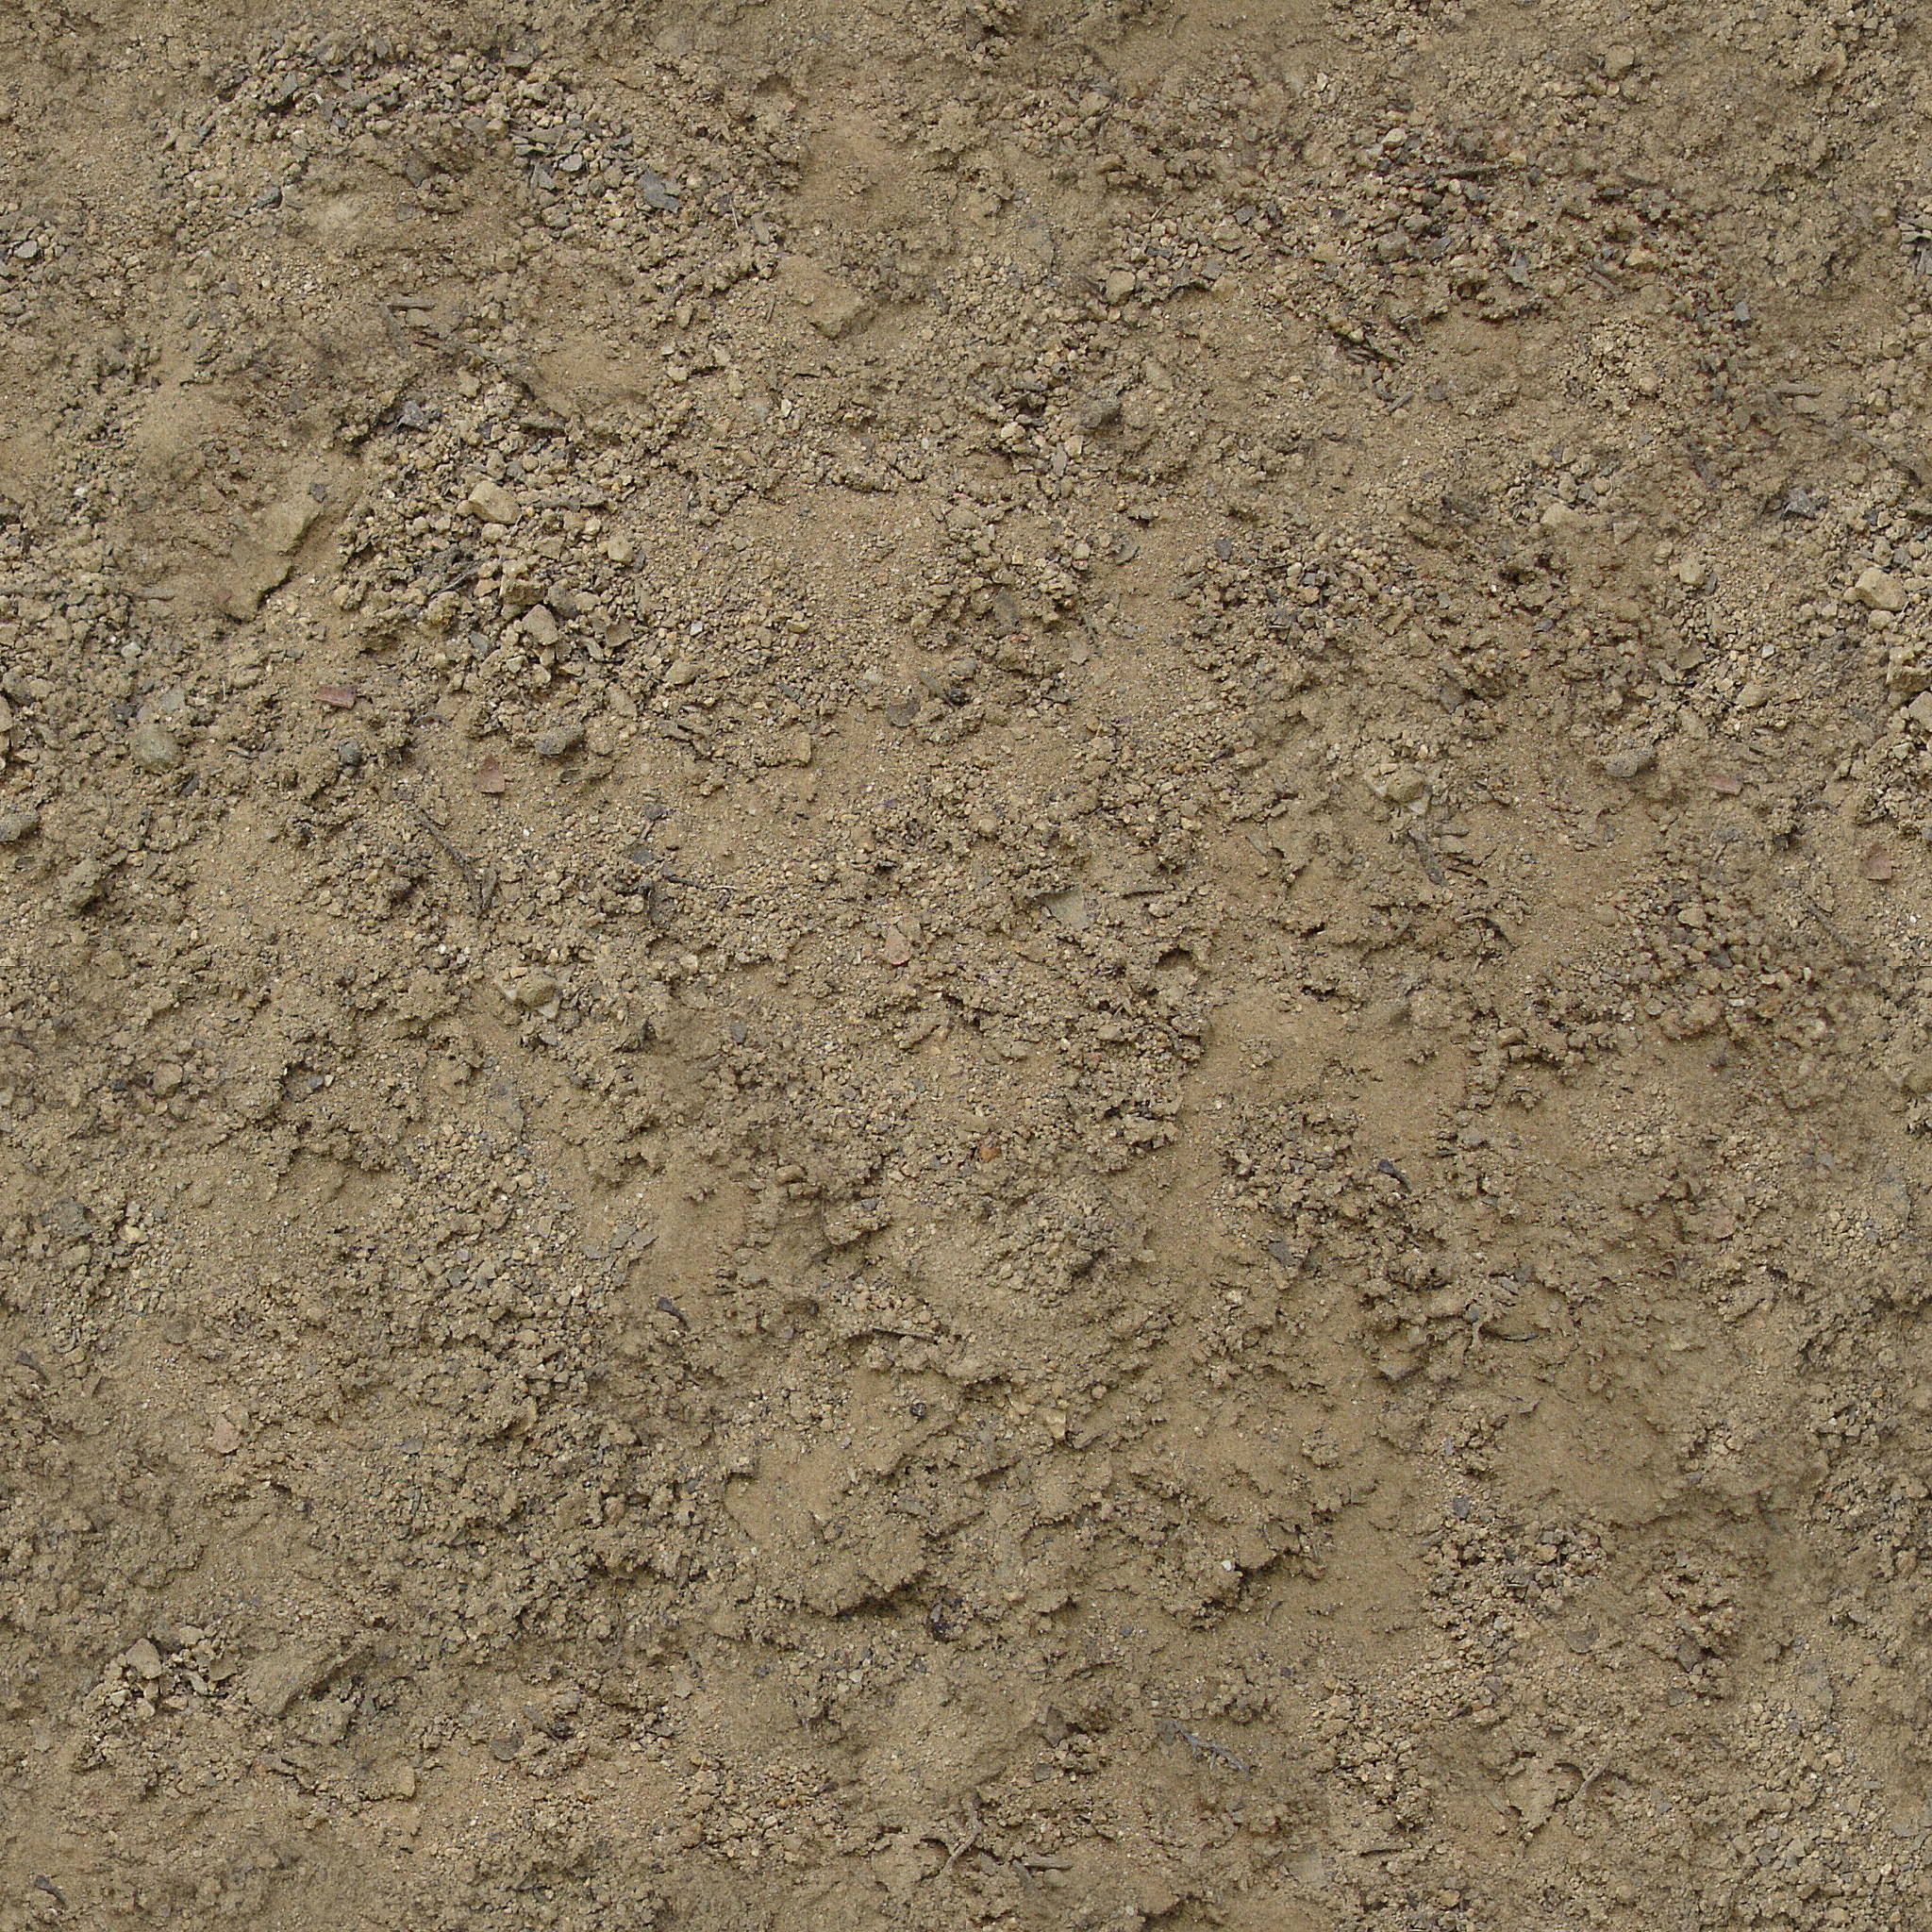 Earth/Ground texture #1 - Seamless - 2K